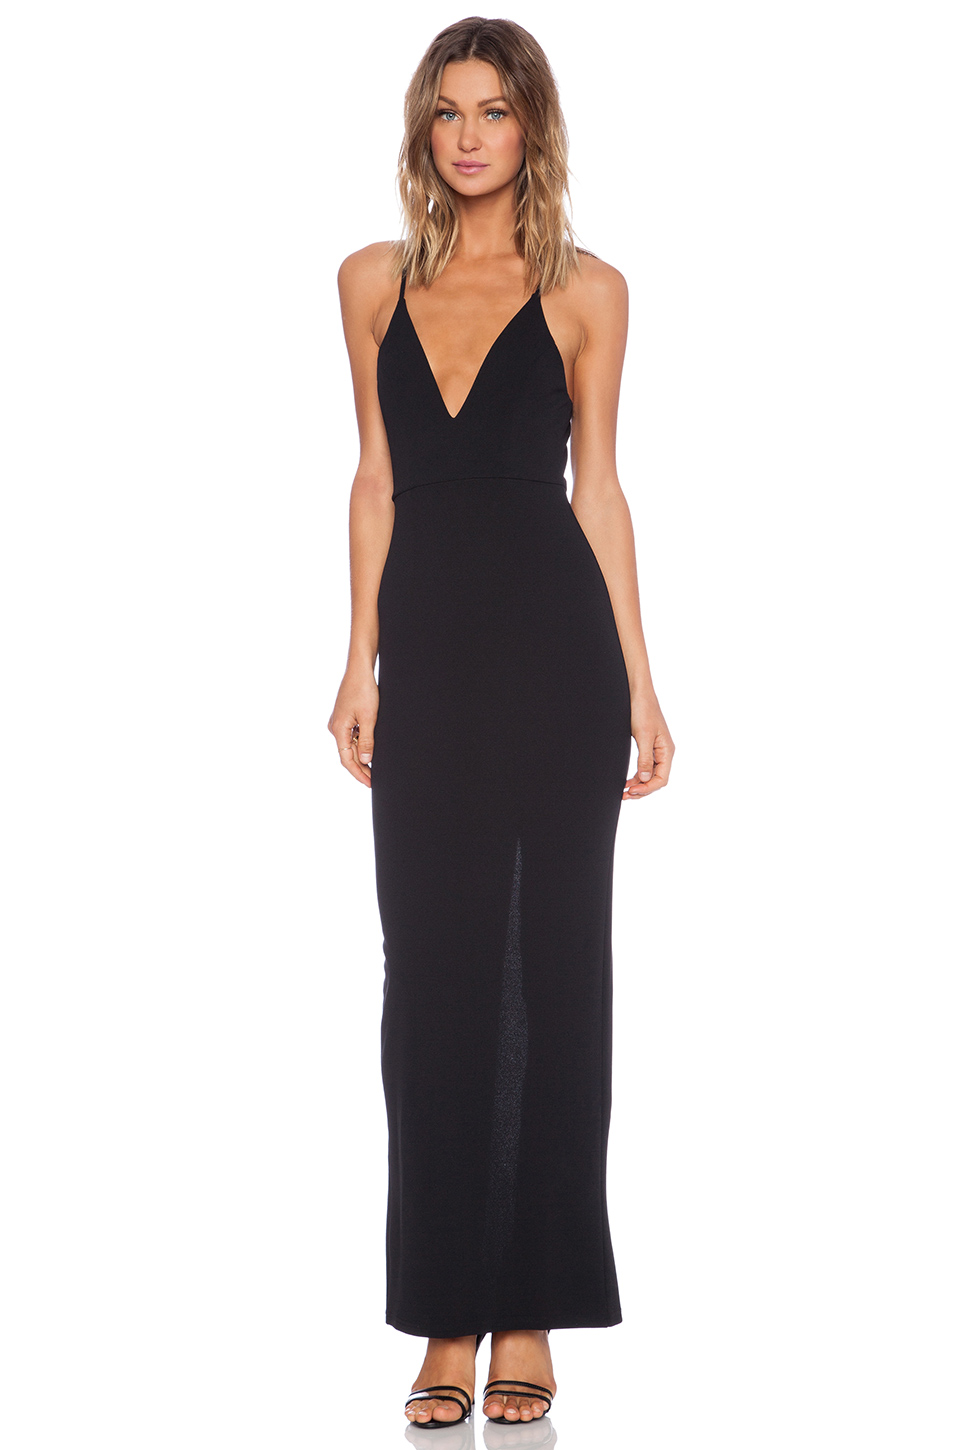 Toby Heart Ginger Polly Maxi Dress in Black